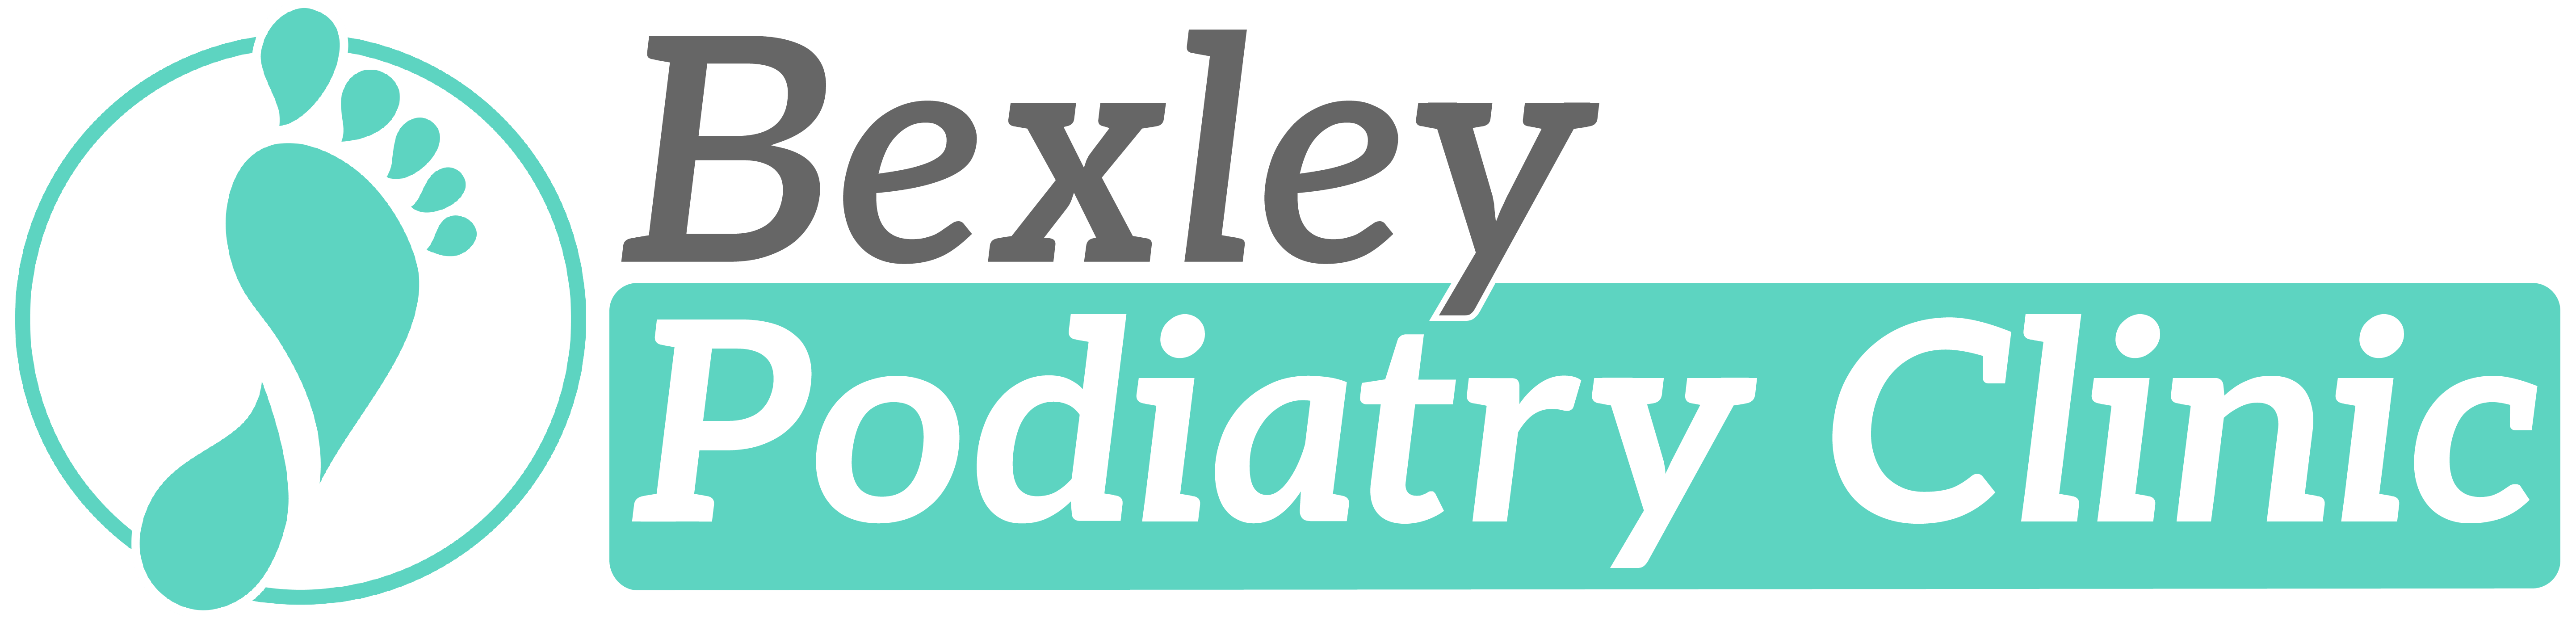 Bexley Podiatry Clinic